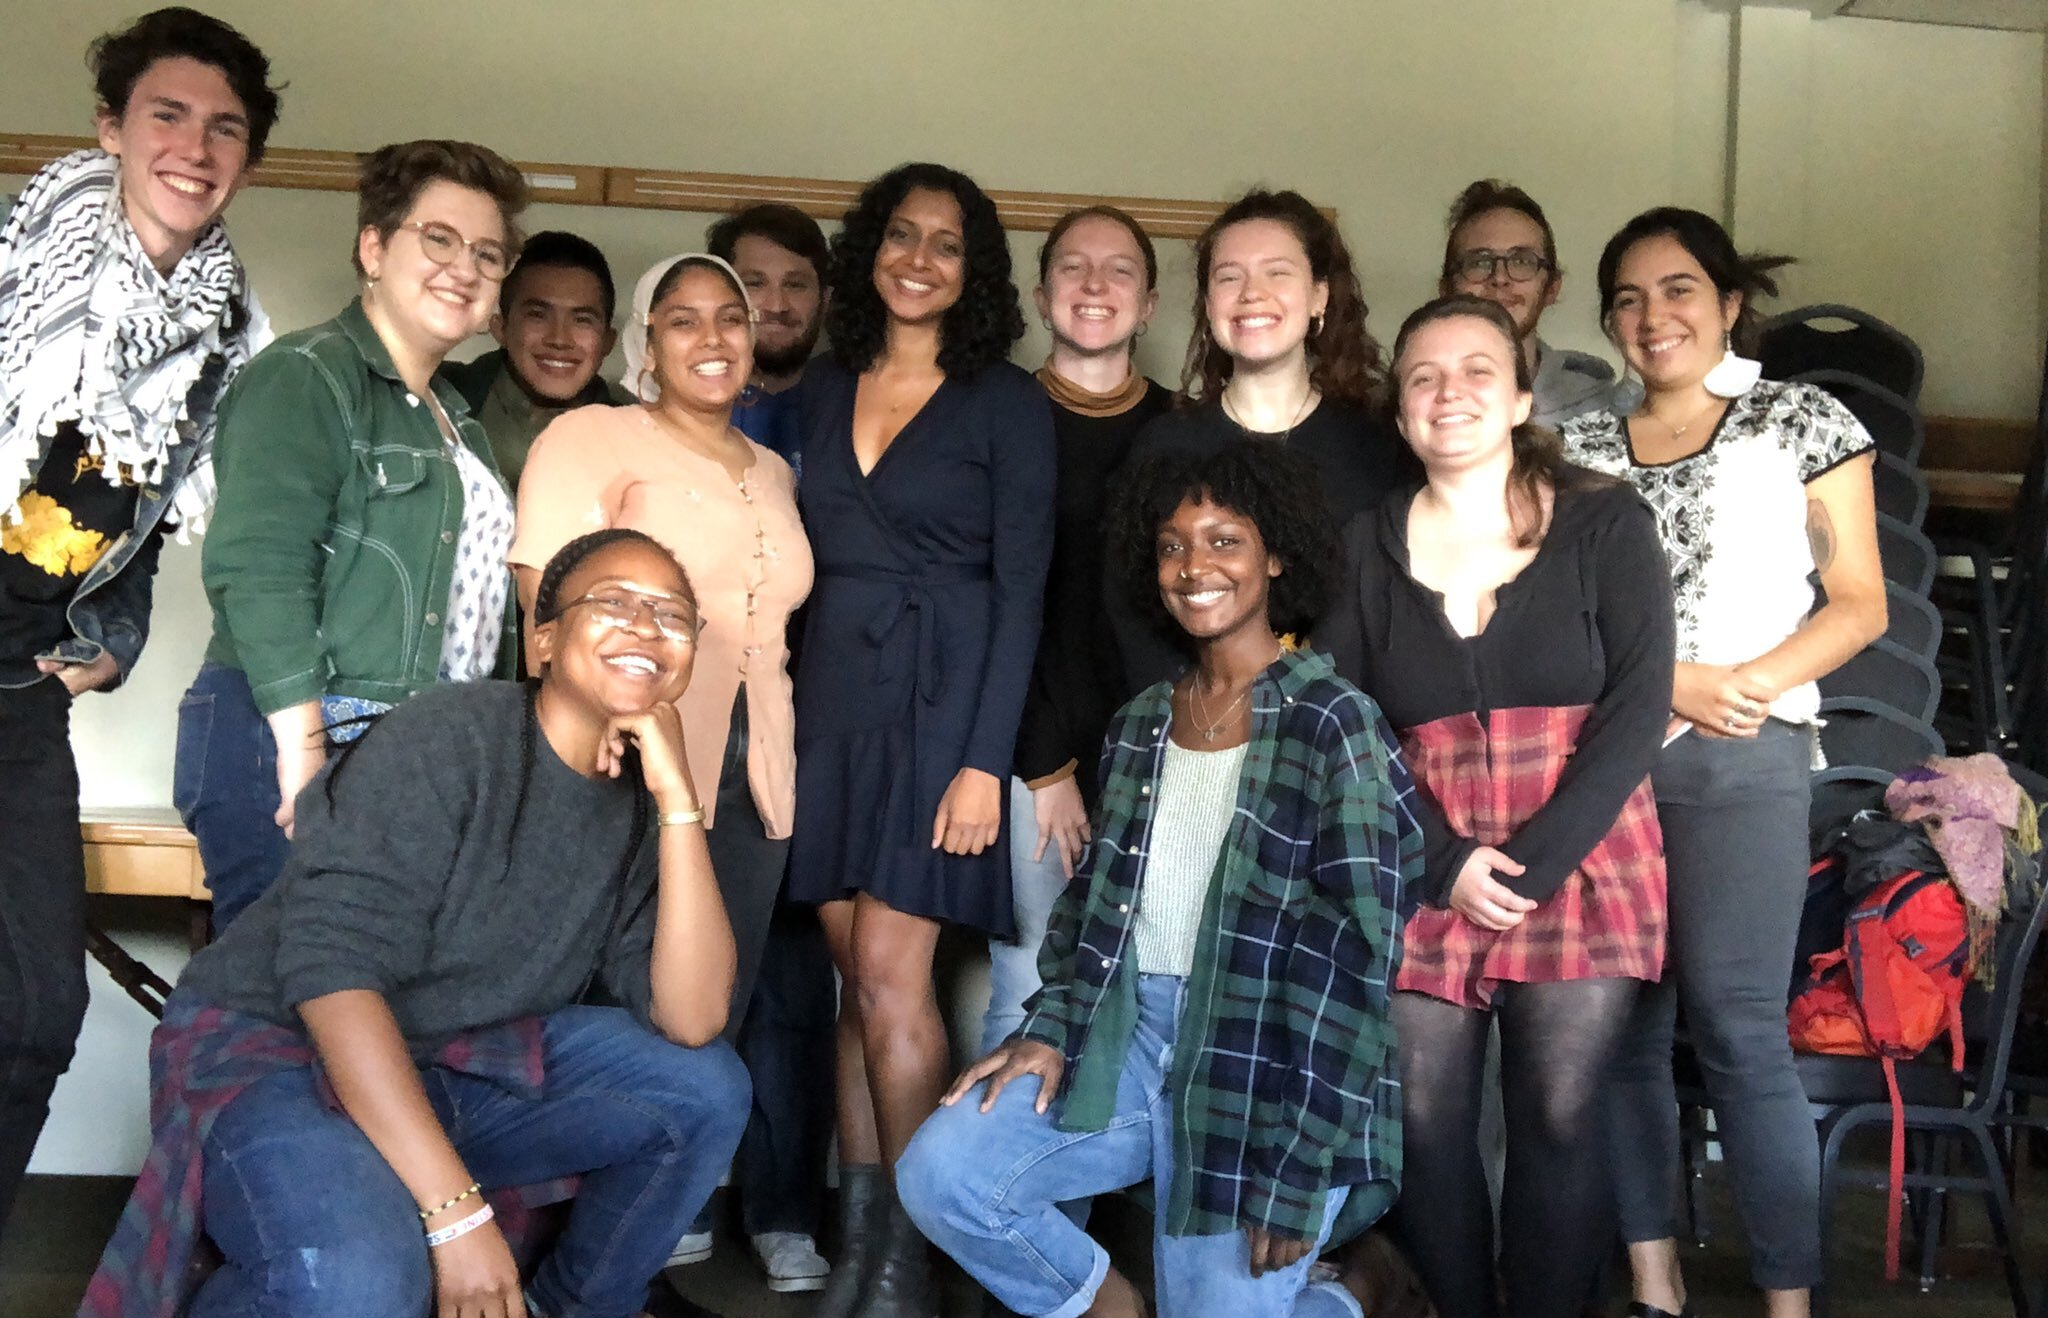 Senior staff attorney Radhika Sainath with members of UMass Amherst SJP after a Know Your Rights workshop.